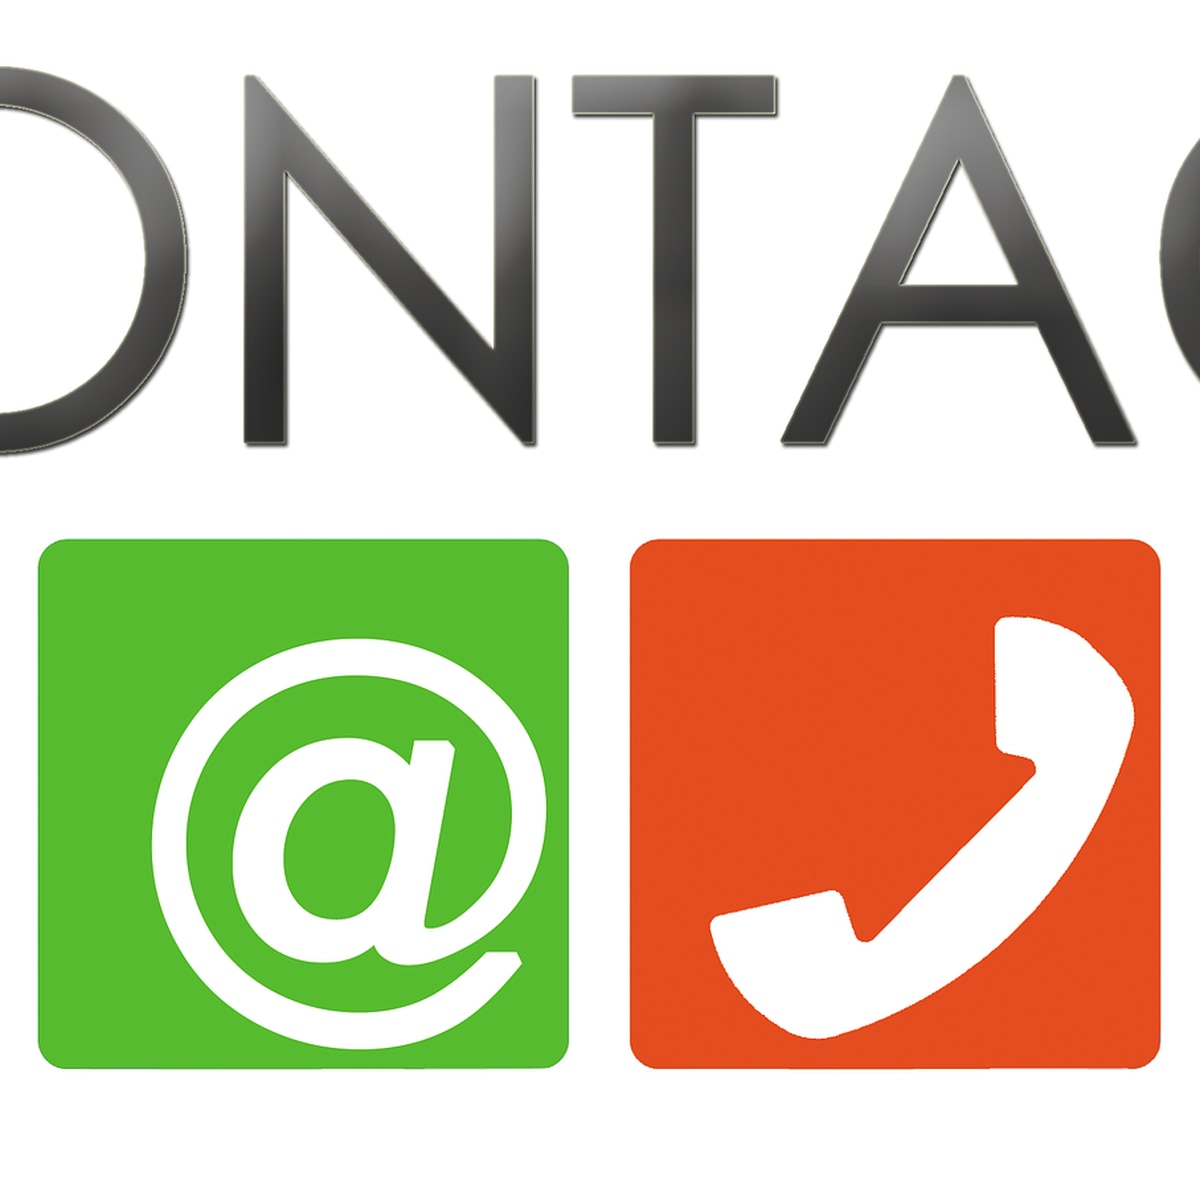 Contact Us, Send A News Tip